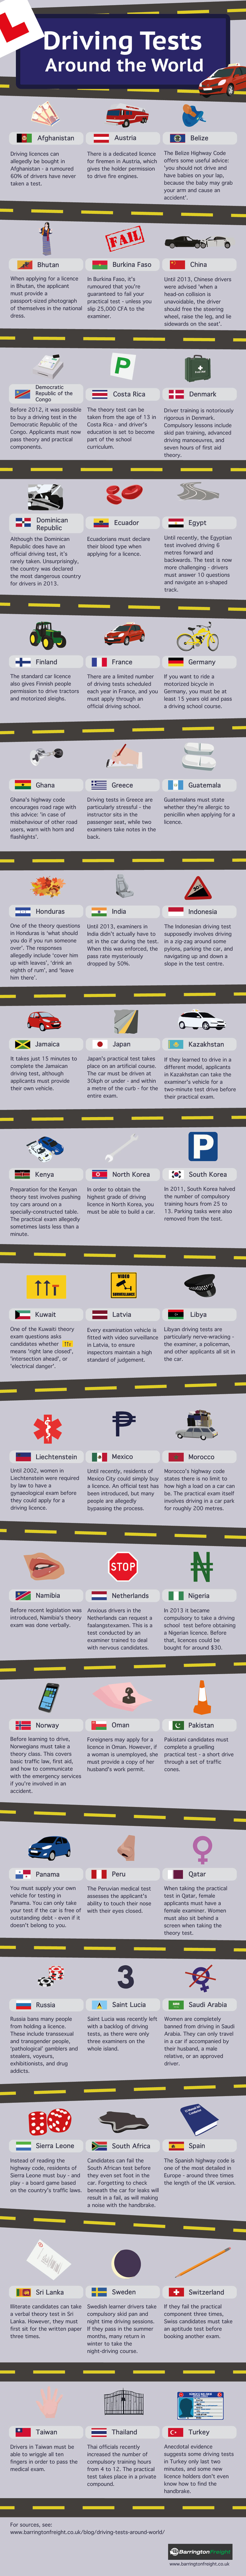 Driving Tests Around the World